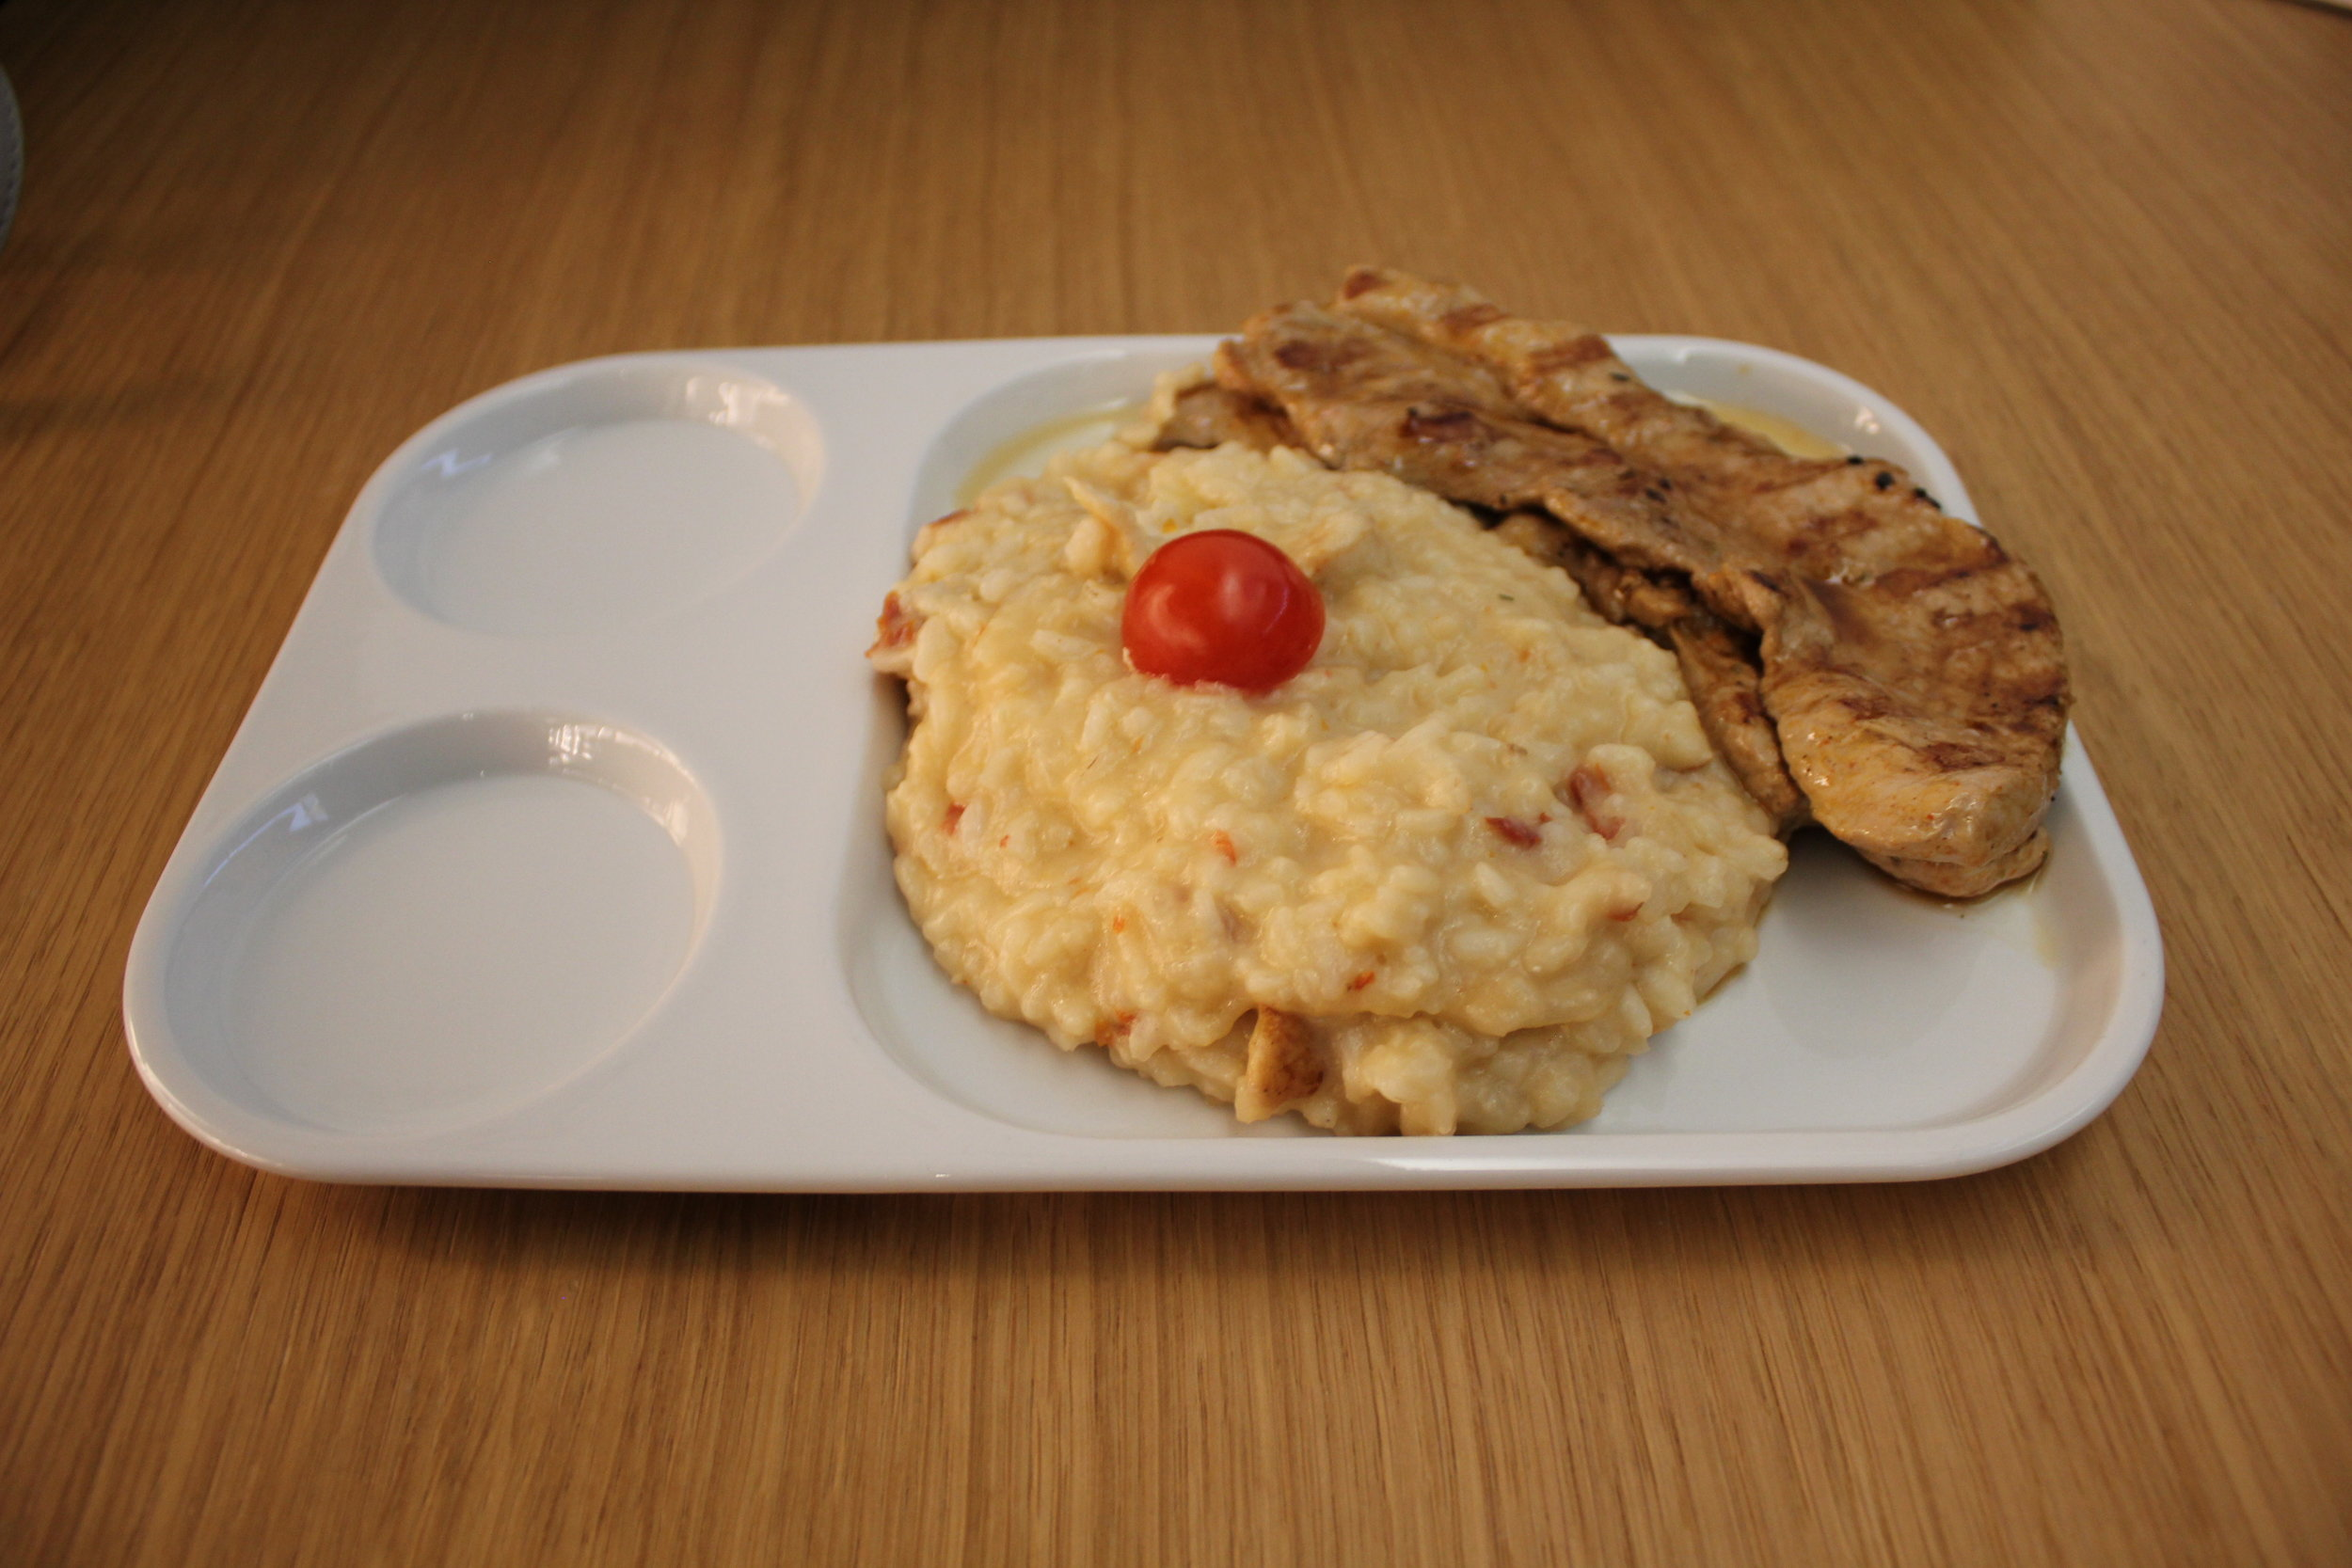 Swiss Senator Lounge Zurich – Rissotto and pork escalope